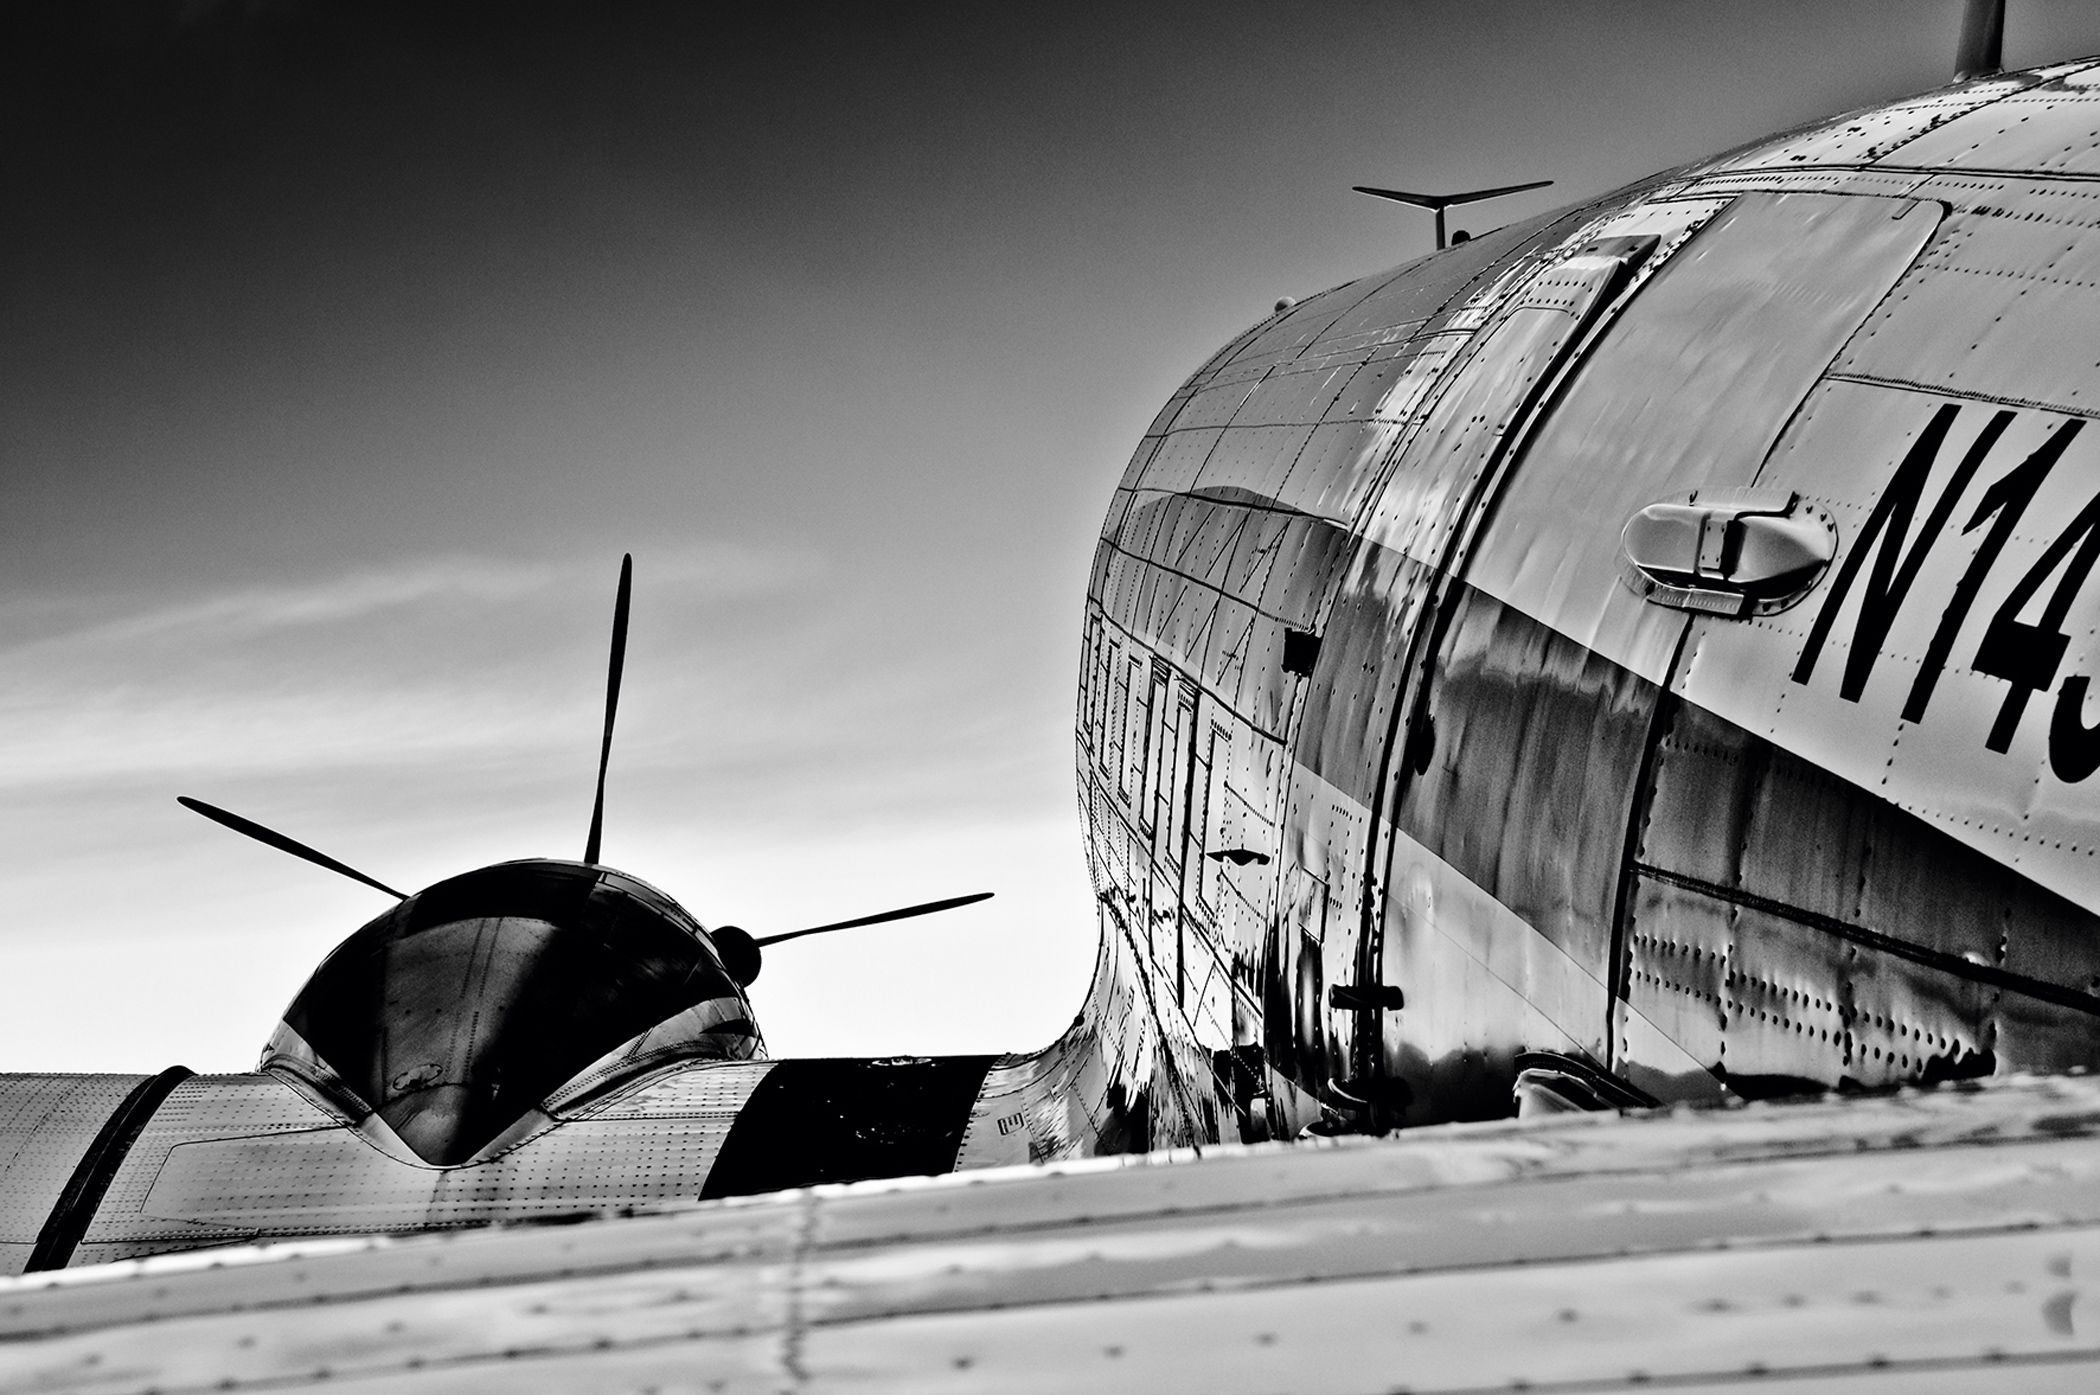 Connoisseurs will recognise the DC-3s used to fight against Nazi Germany and the Fouga Magisters from the Patrouille de France. Black and white sublimates the lines of the aircraft. Whilst light reflects upon the cabin and the wings, one cannot help but think about 'L'Albatros' by Baudelaire pathetically letting their great white wings trail beside them.